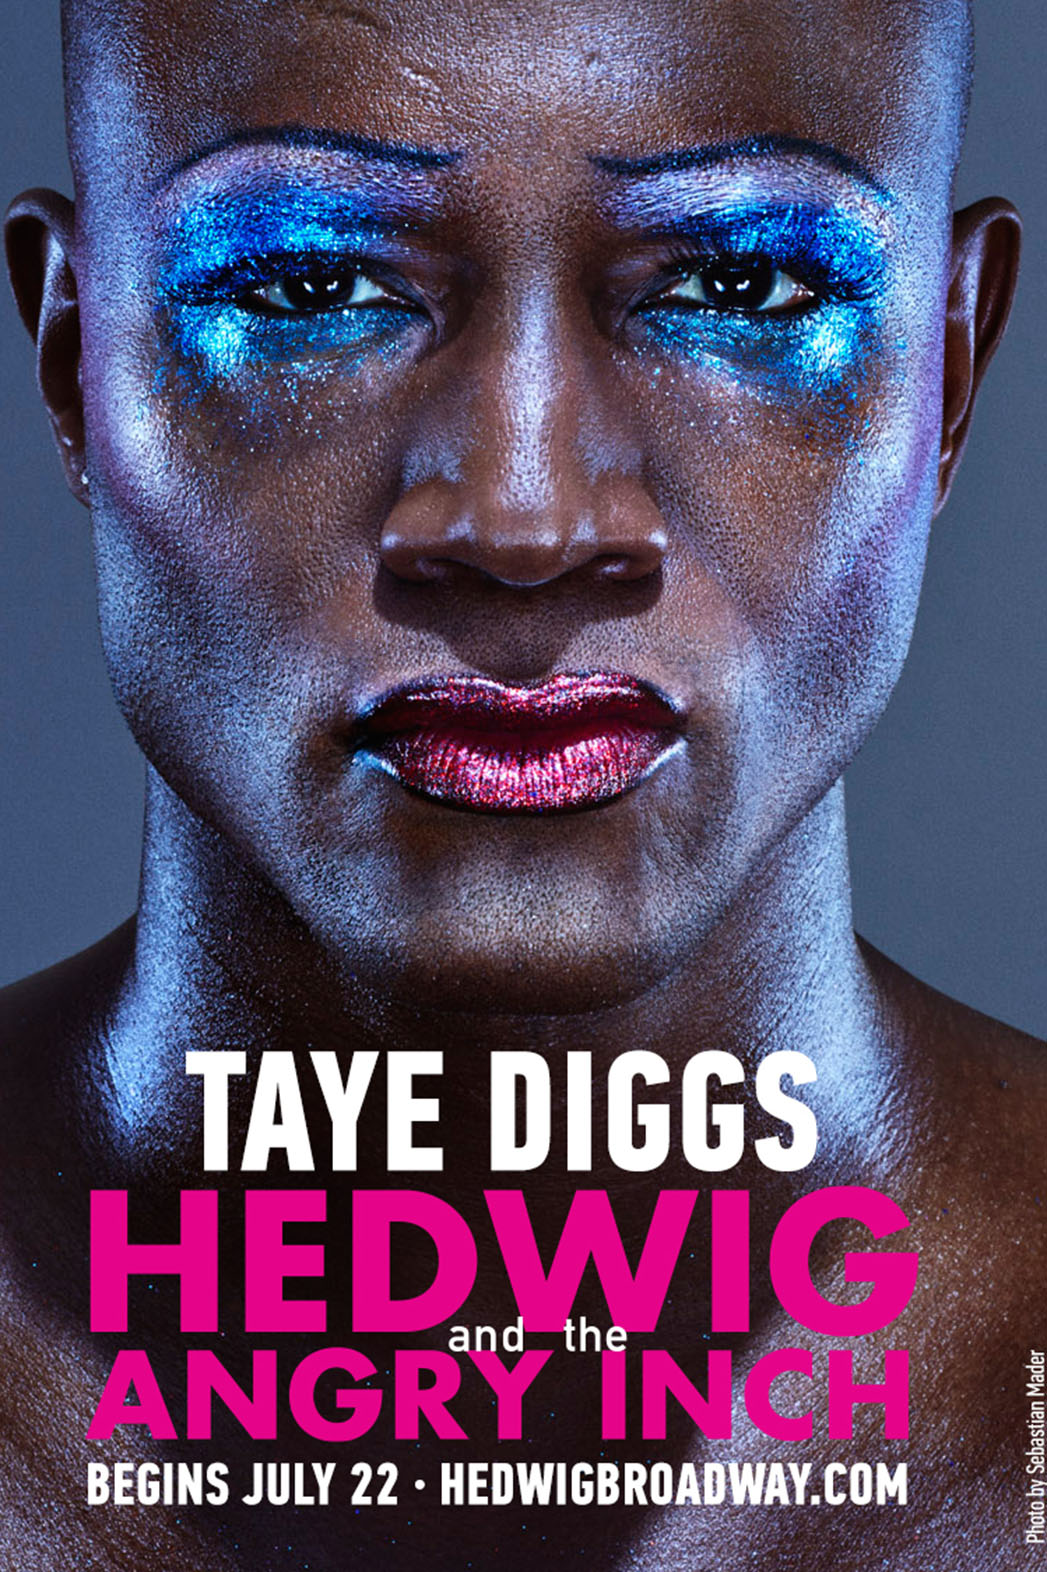 taye_diggs_hedwig_and_the_angry_inch_poster